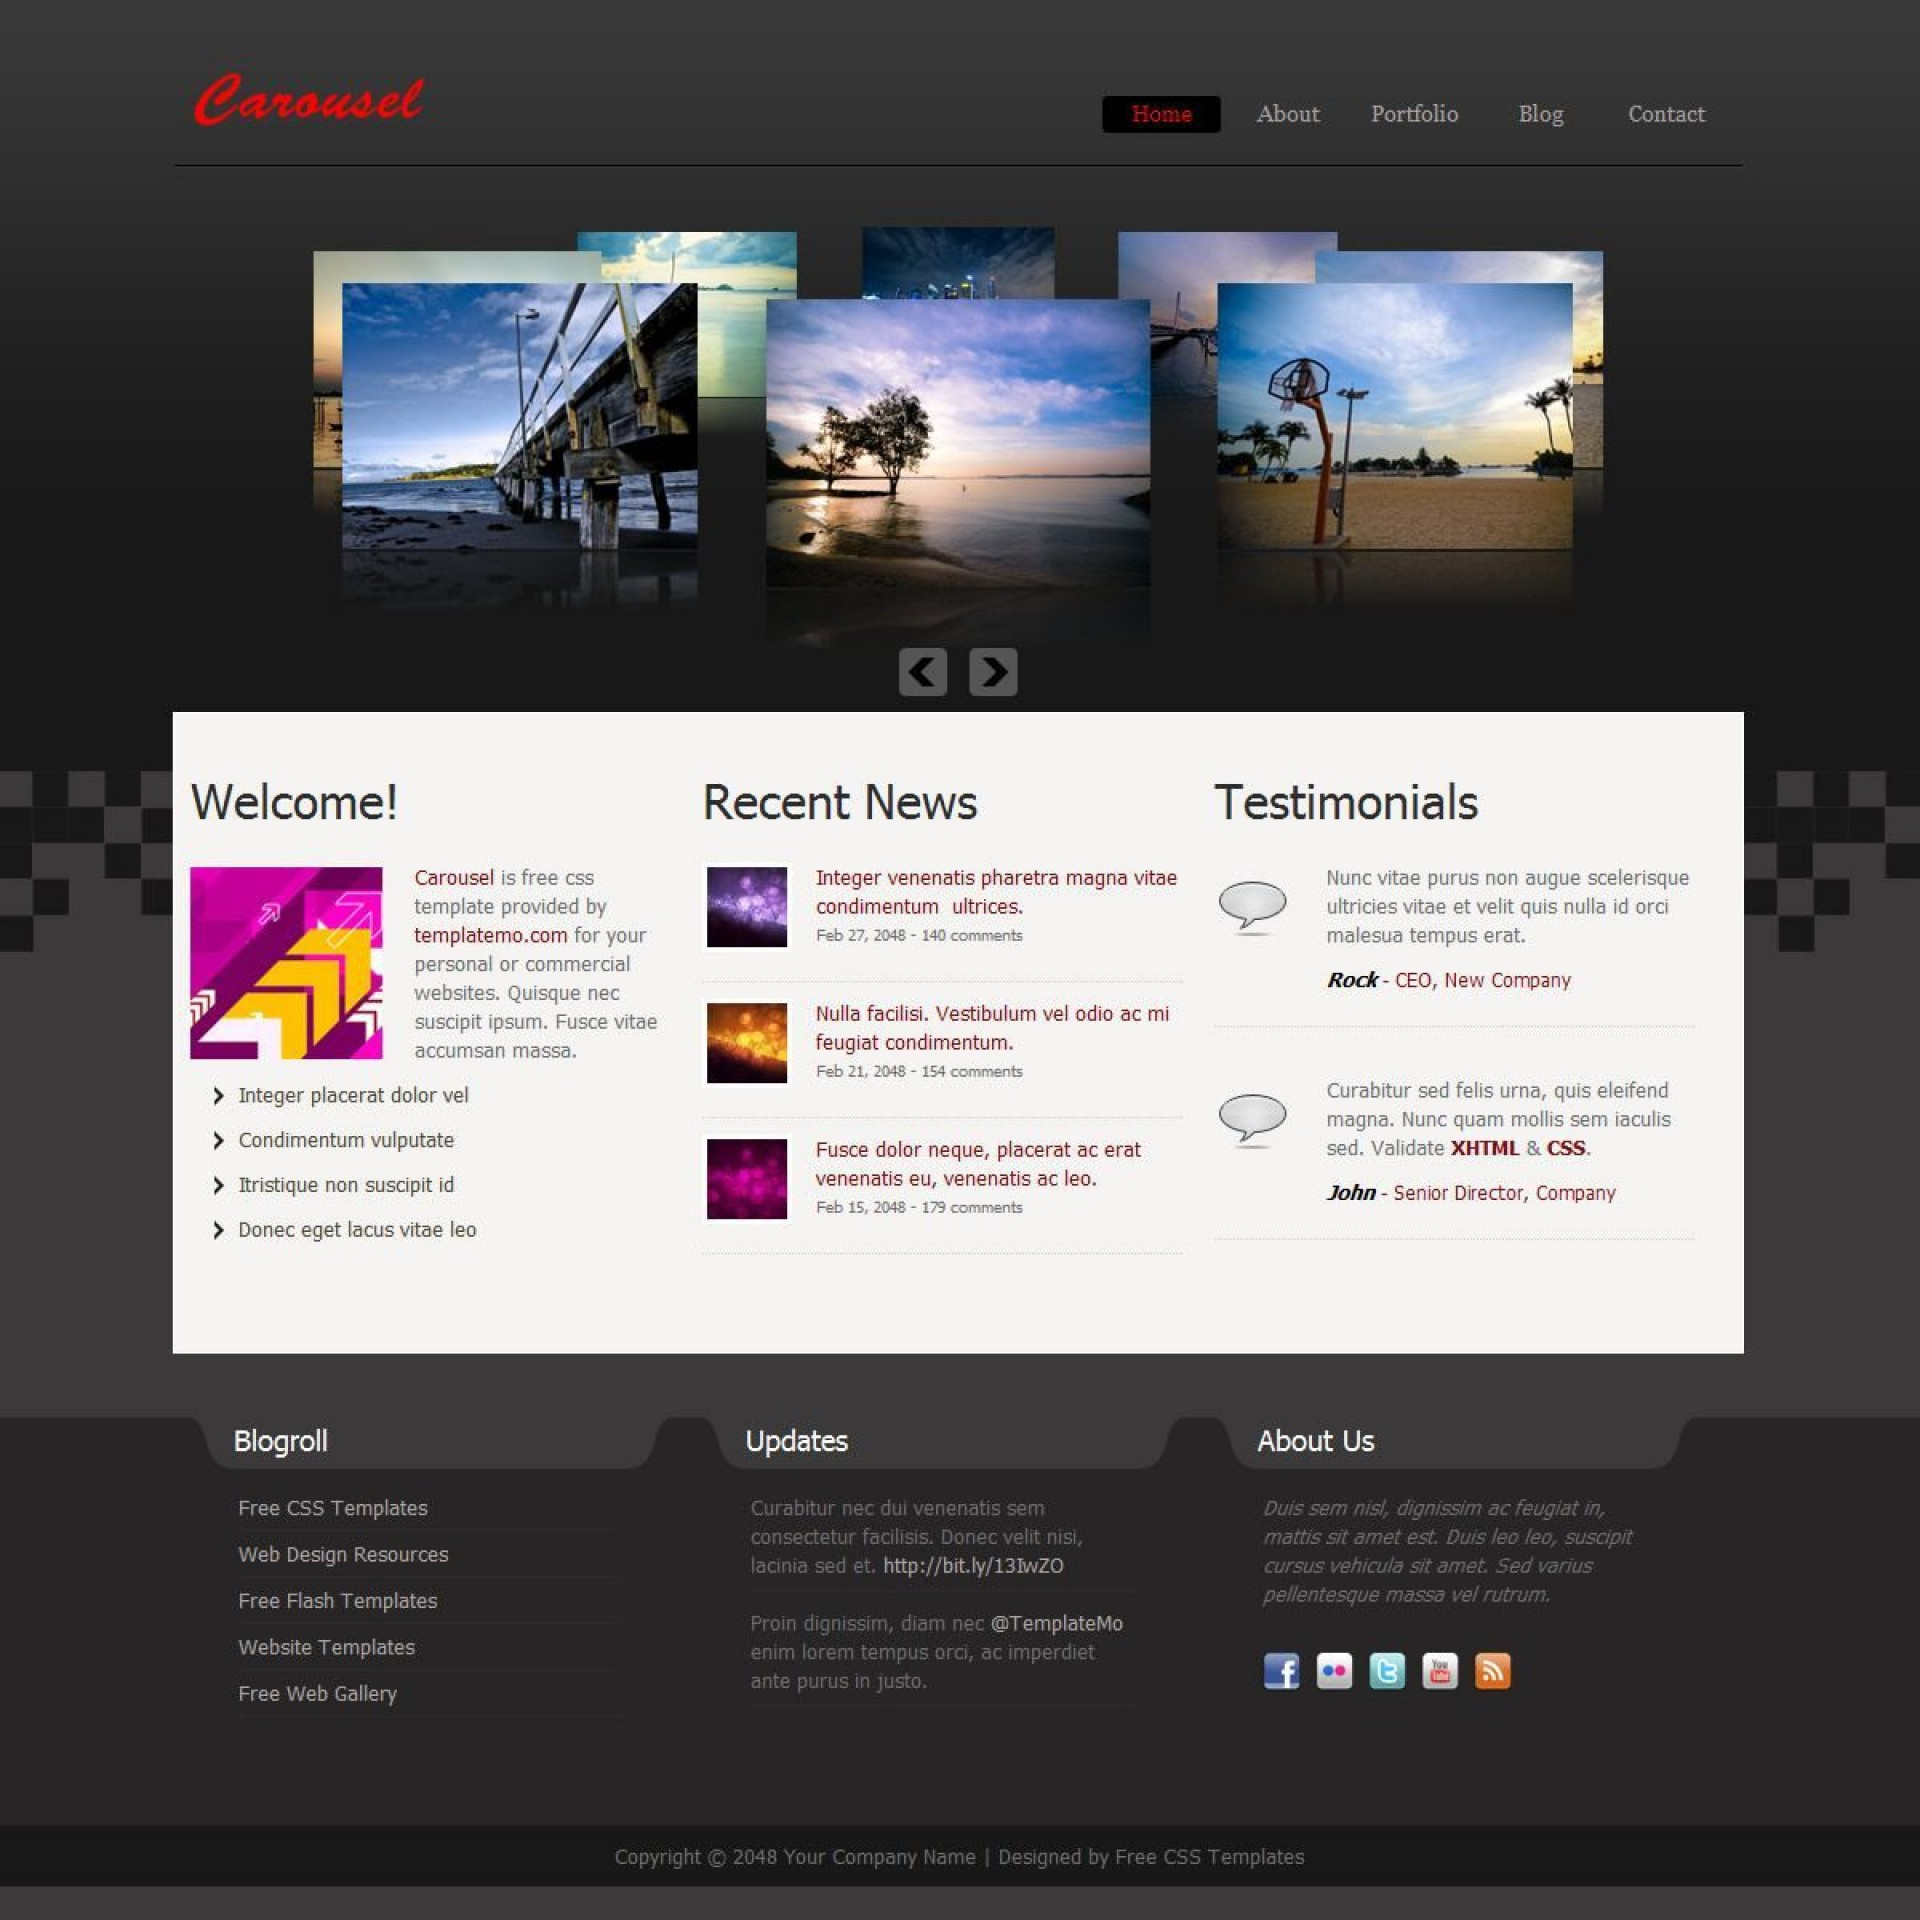 003 Unforgettable Free Responsive Website Template Download Html And Cs Jquery Inspiration  For It Company1920